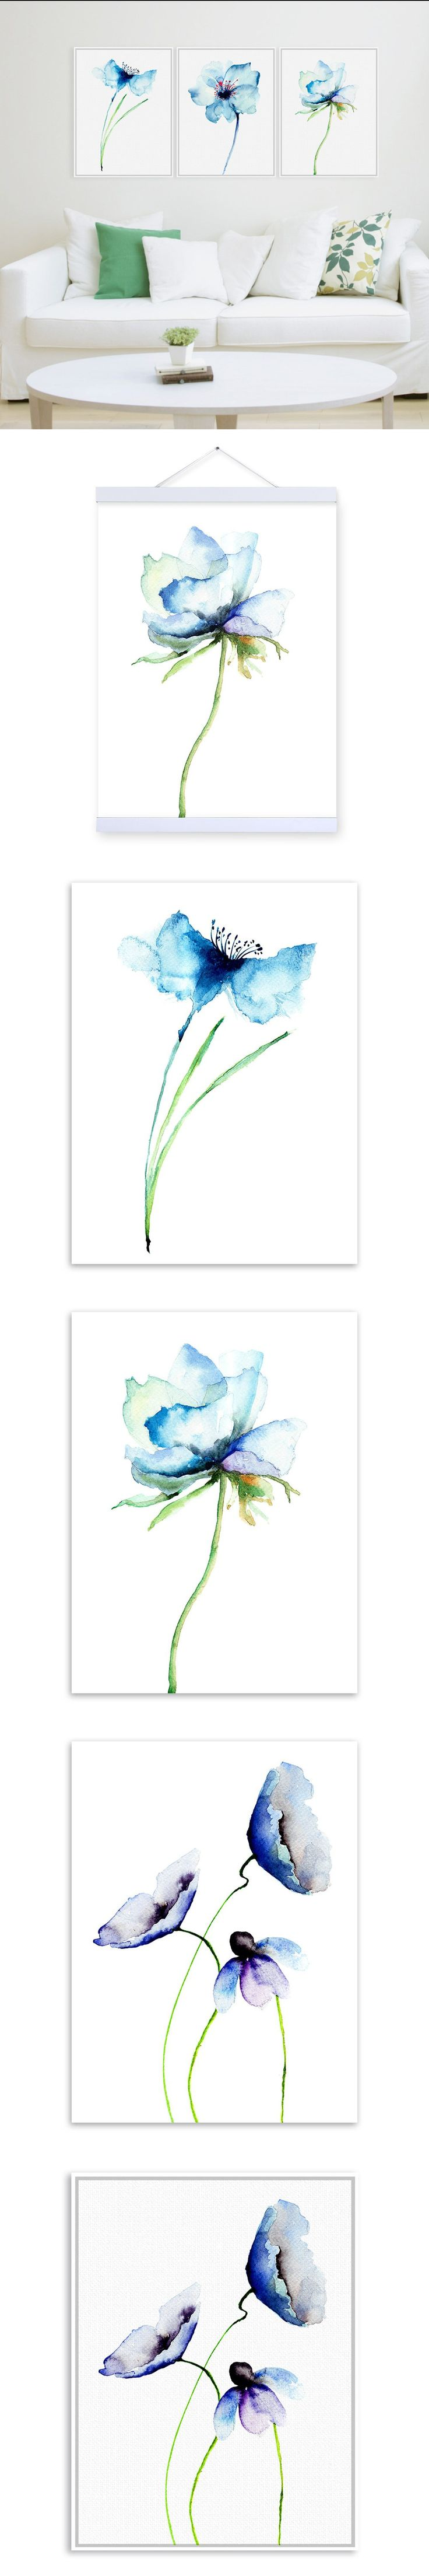 Best 25+ Simple canvas paintings ideas on Pinterest | Simple canvas art,  Painting canvas crafts and Simple paintings on canvas